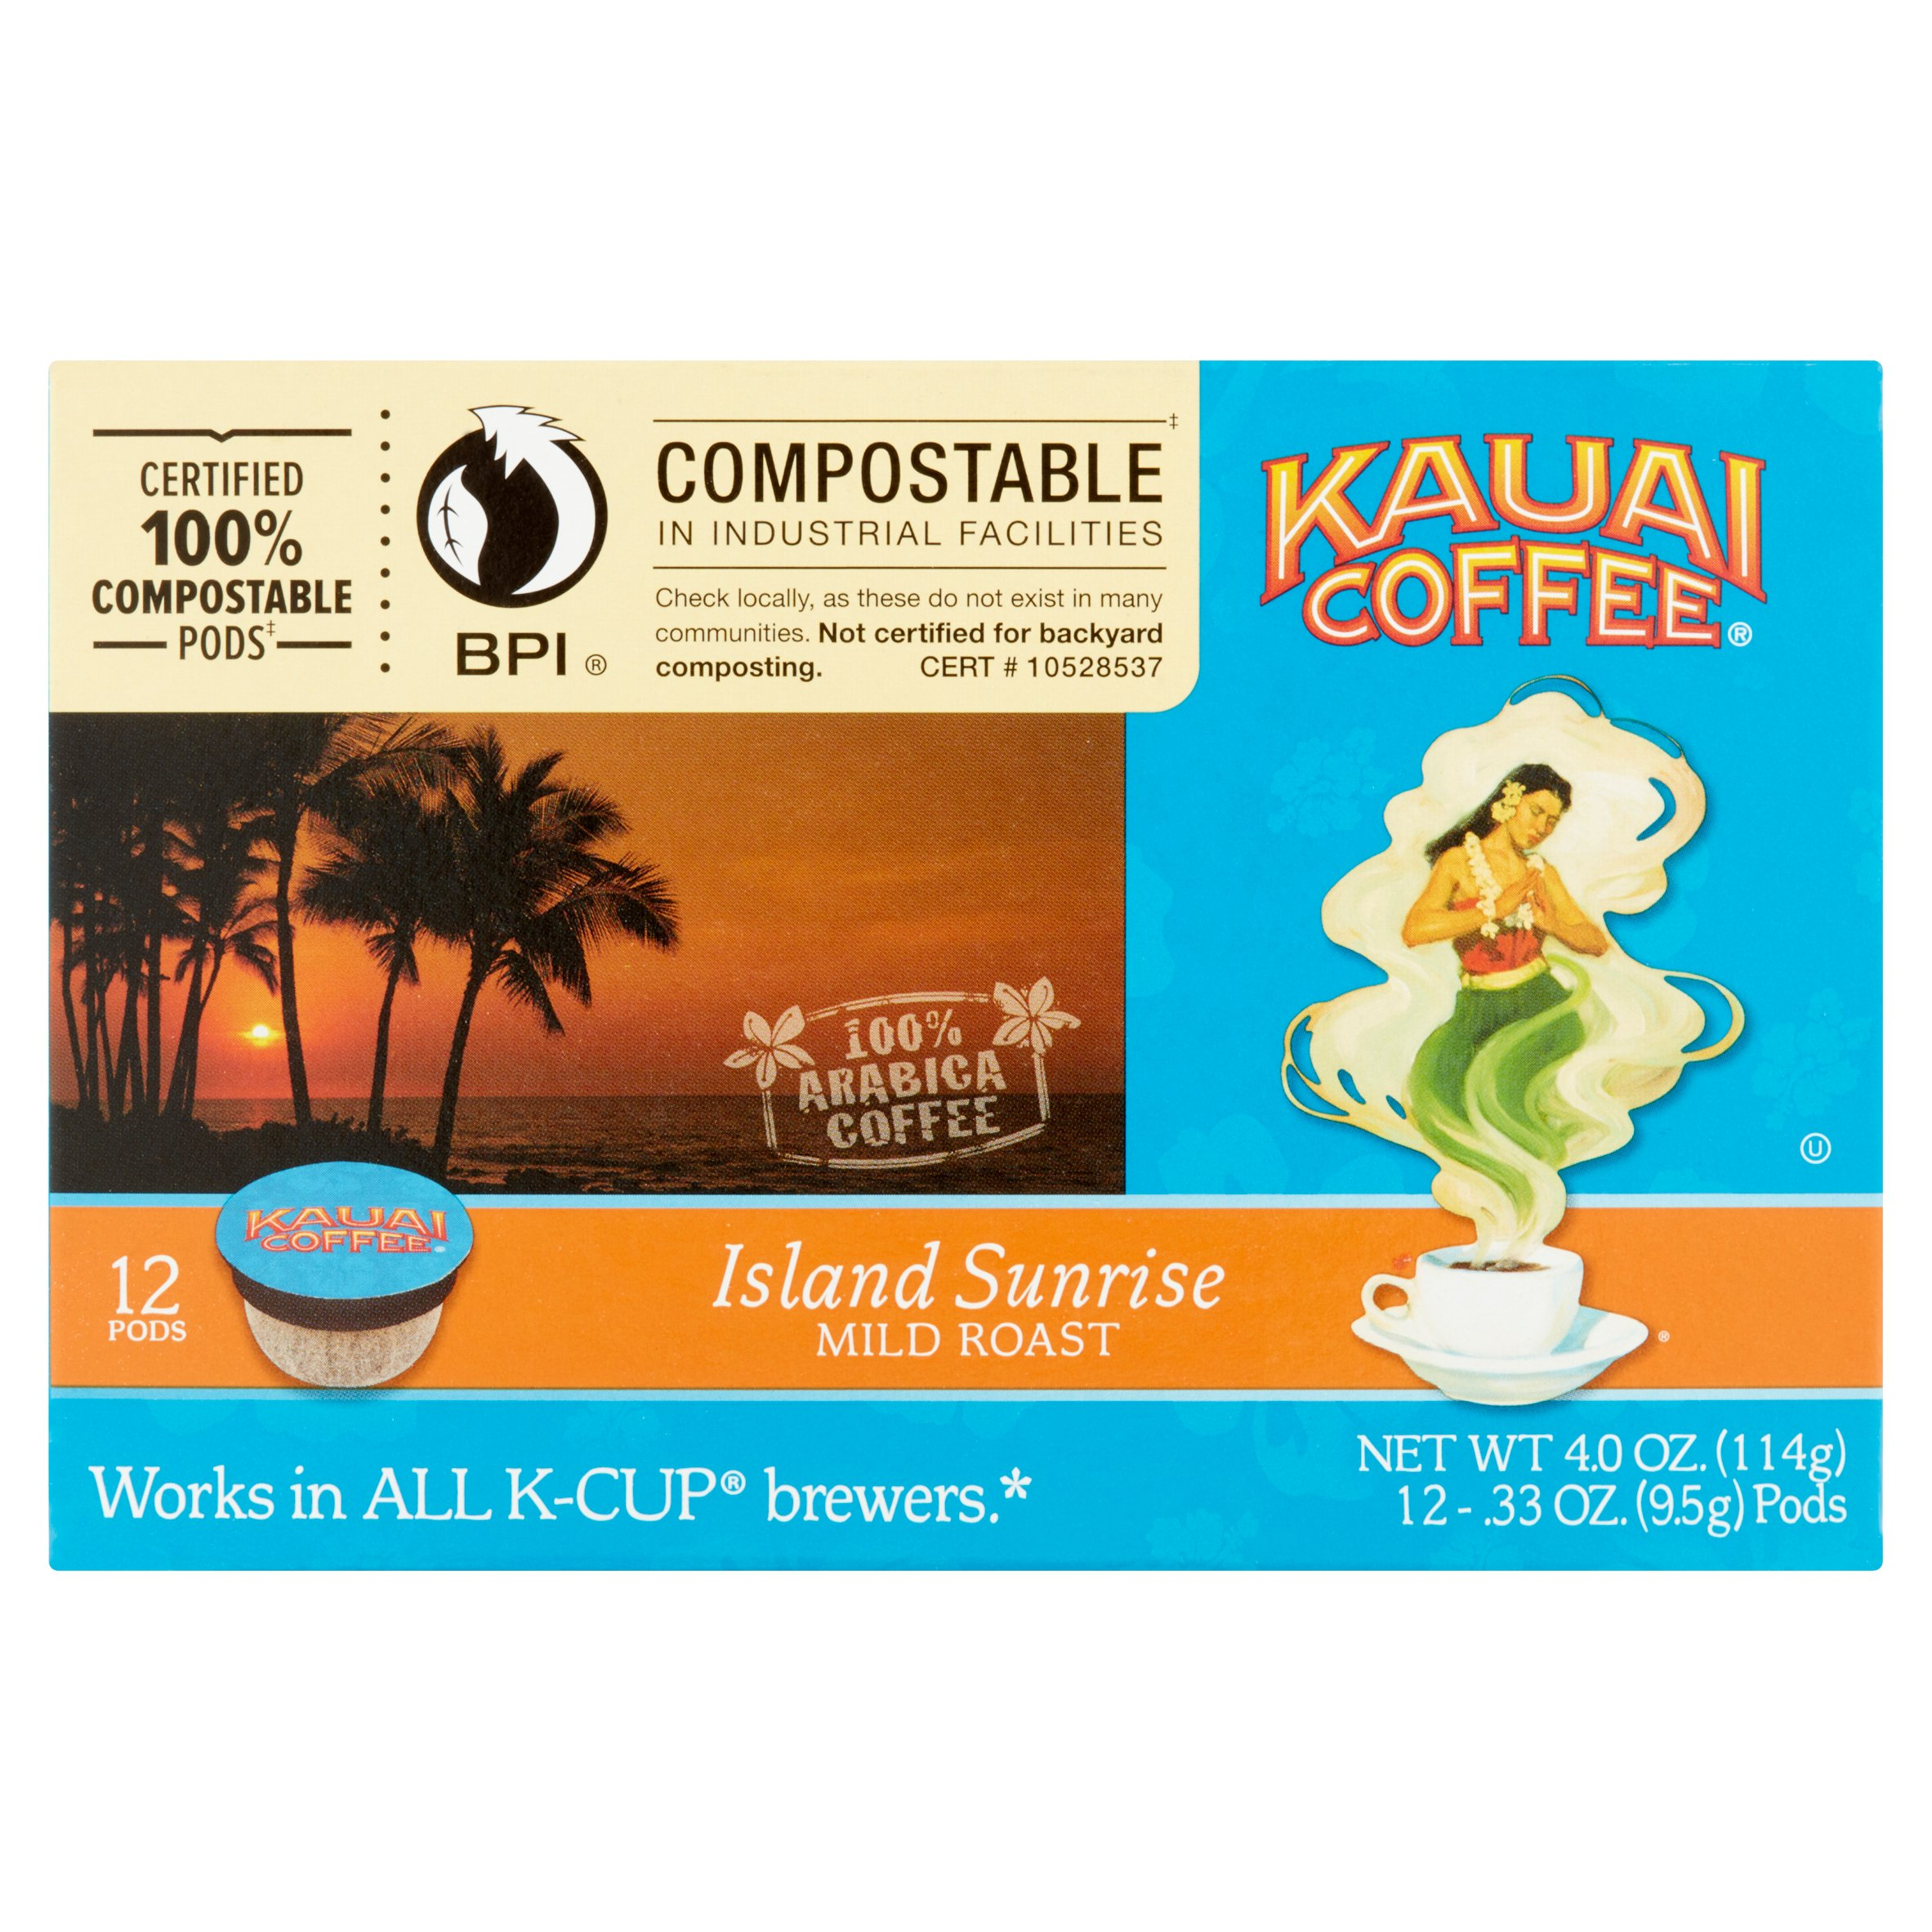 Kauai Coffee® Island Sunrise Mild Roast Single Serve Coffee Pods 12 ct Box